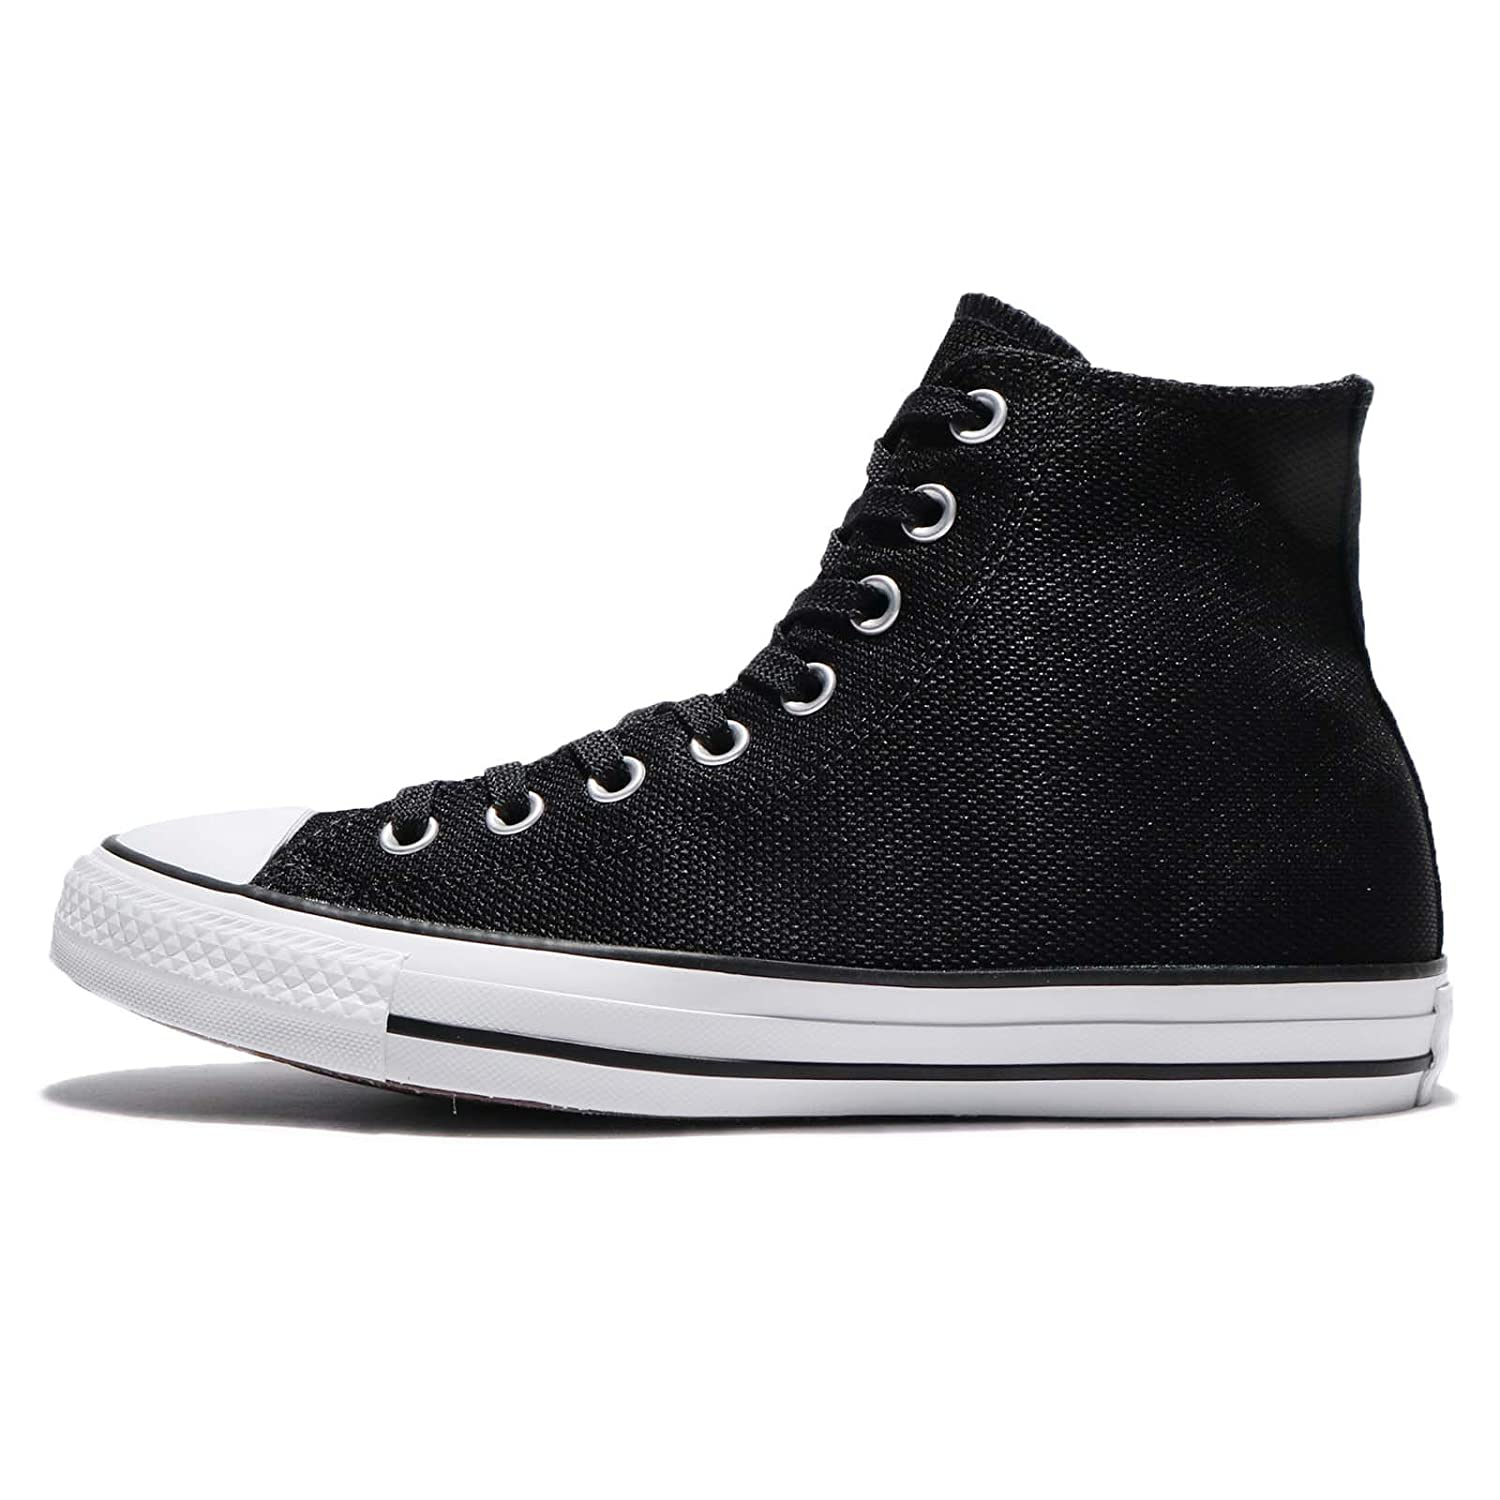 1bac4f4a4f6 Converse Womens Chuck Taylor All Star Hi Canvas Trainers  Amazon.co.uk   Shoes   Bags